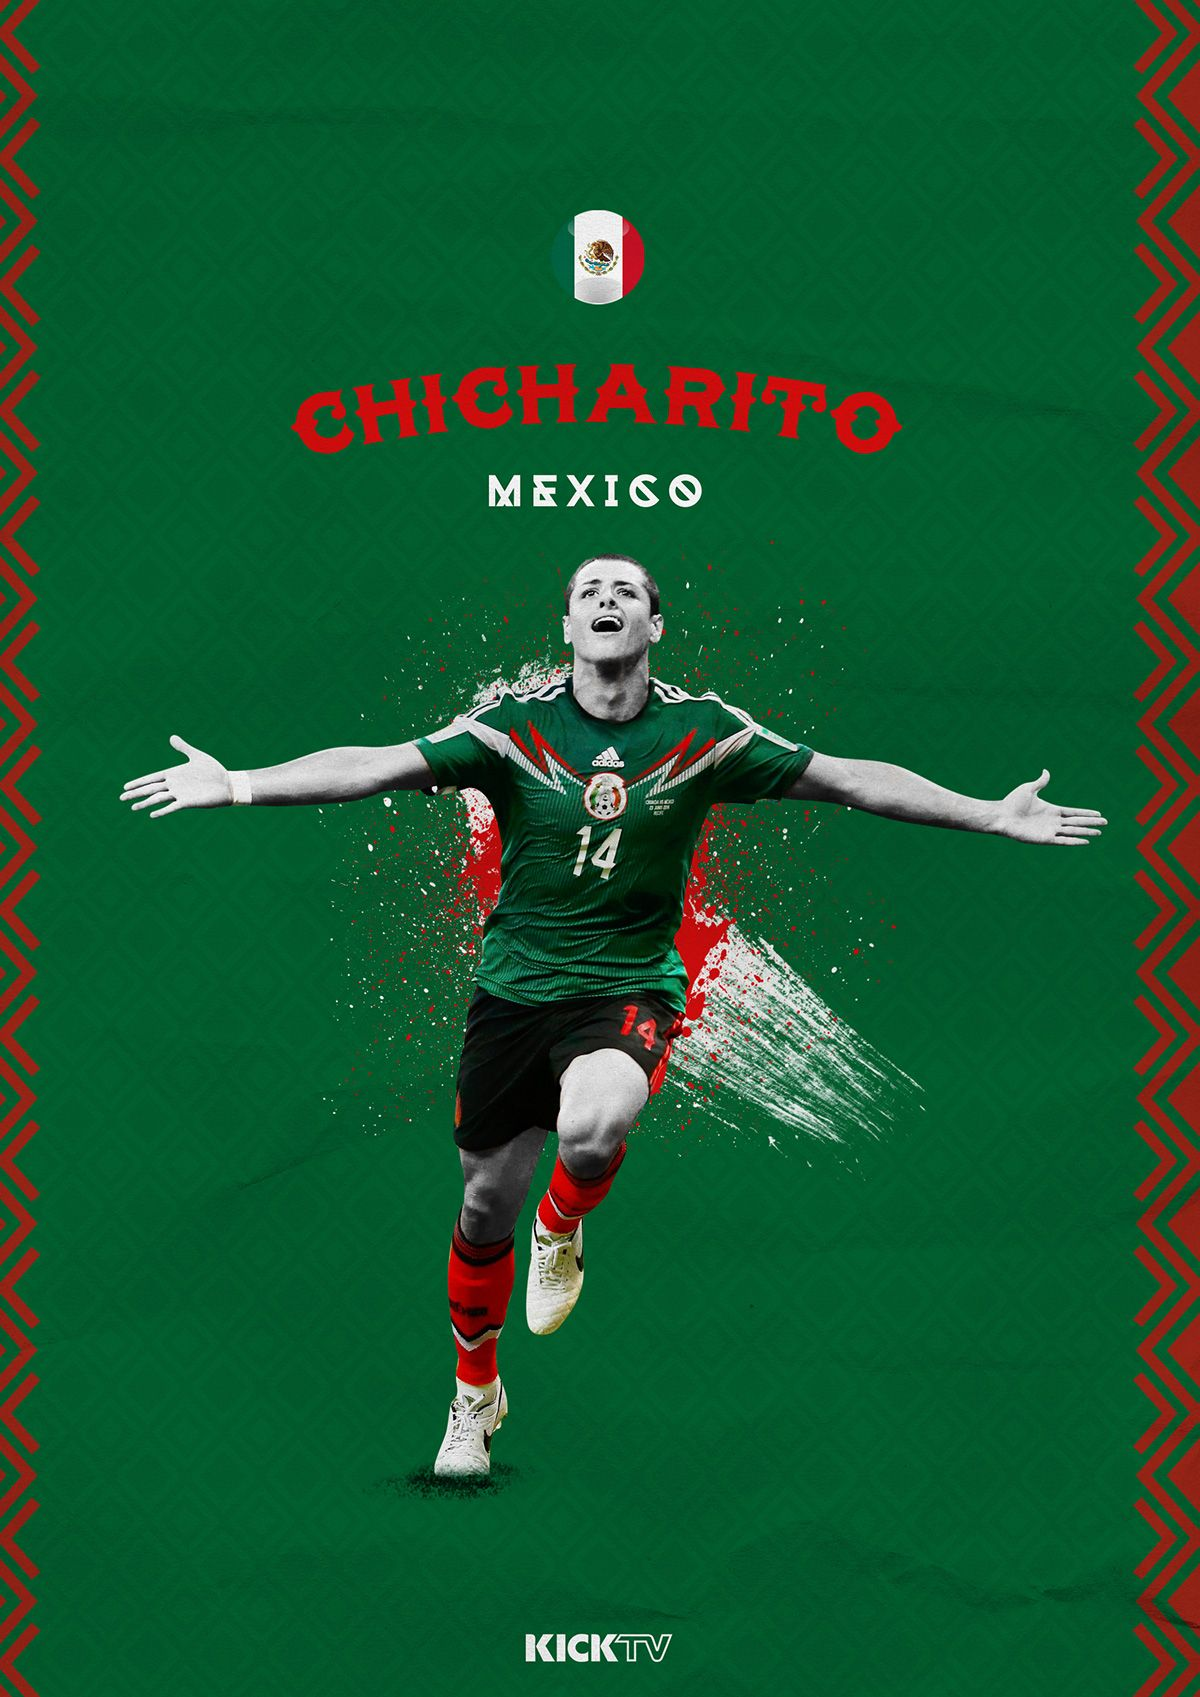 Pin By Hmbenitez On Mexico Wallpaper Football Poster Soccer Poster Good Soccer Players